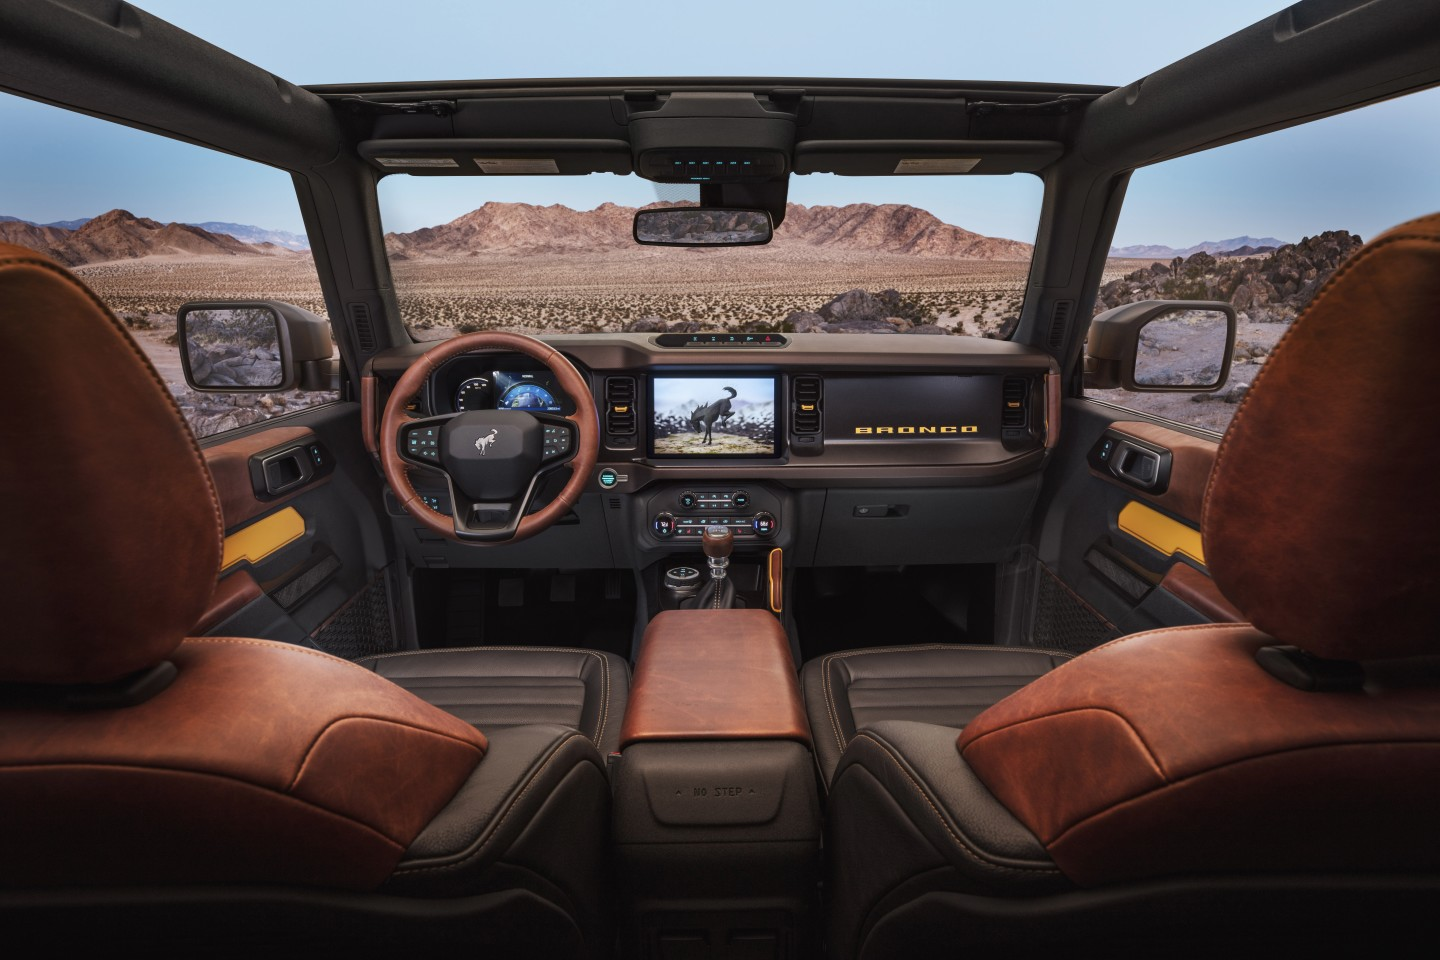 The 2021 Bronco will offer an available 12-inch SYNC 4 system, optional leather trim seating, console-mounted transmission shifter/selector and G.O.A.T. Modes control knob